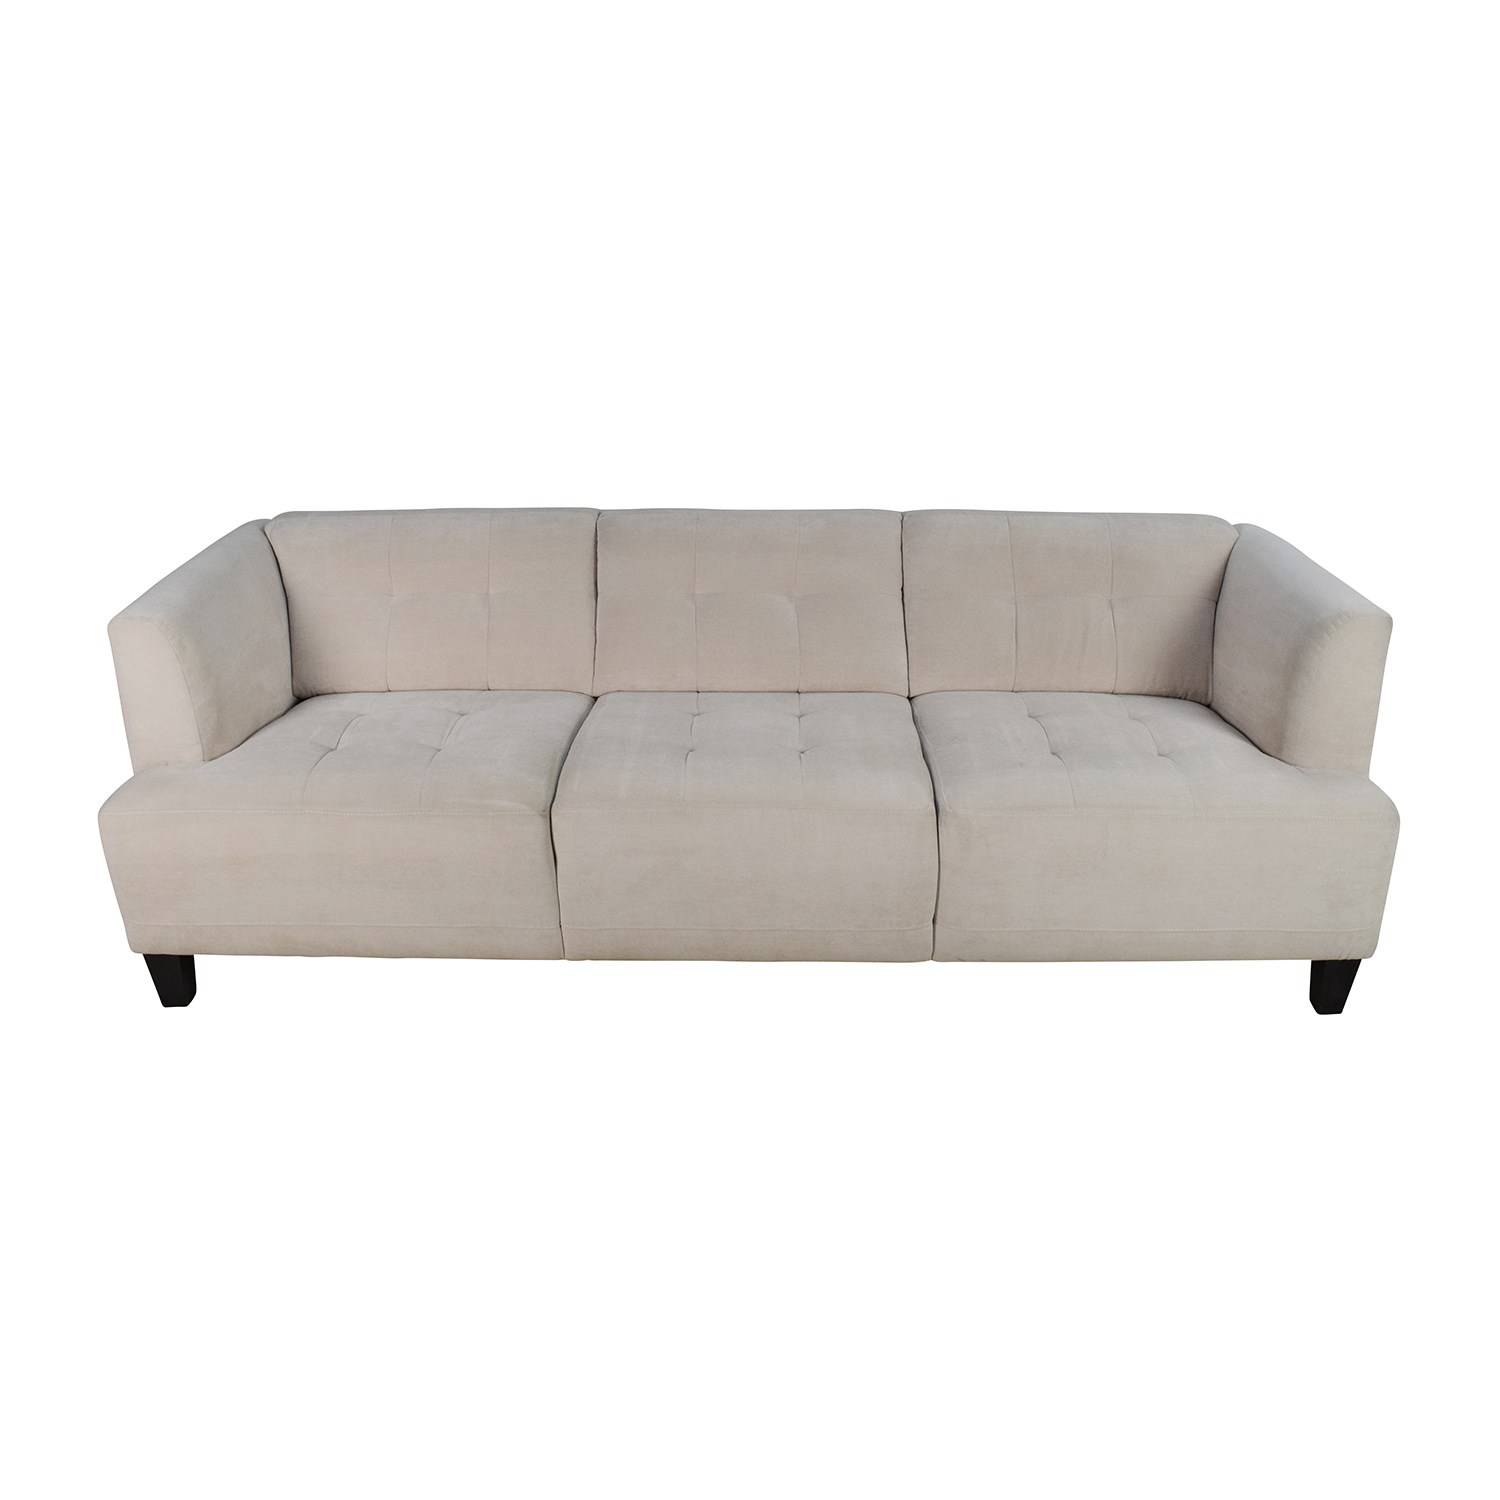 Macys Alessia Pearl Button Tufted Sofa Macys